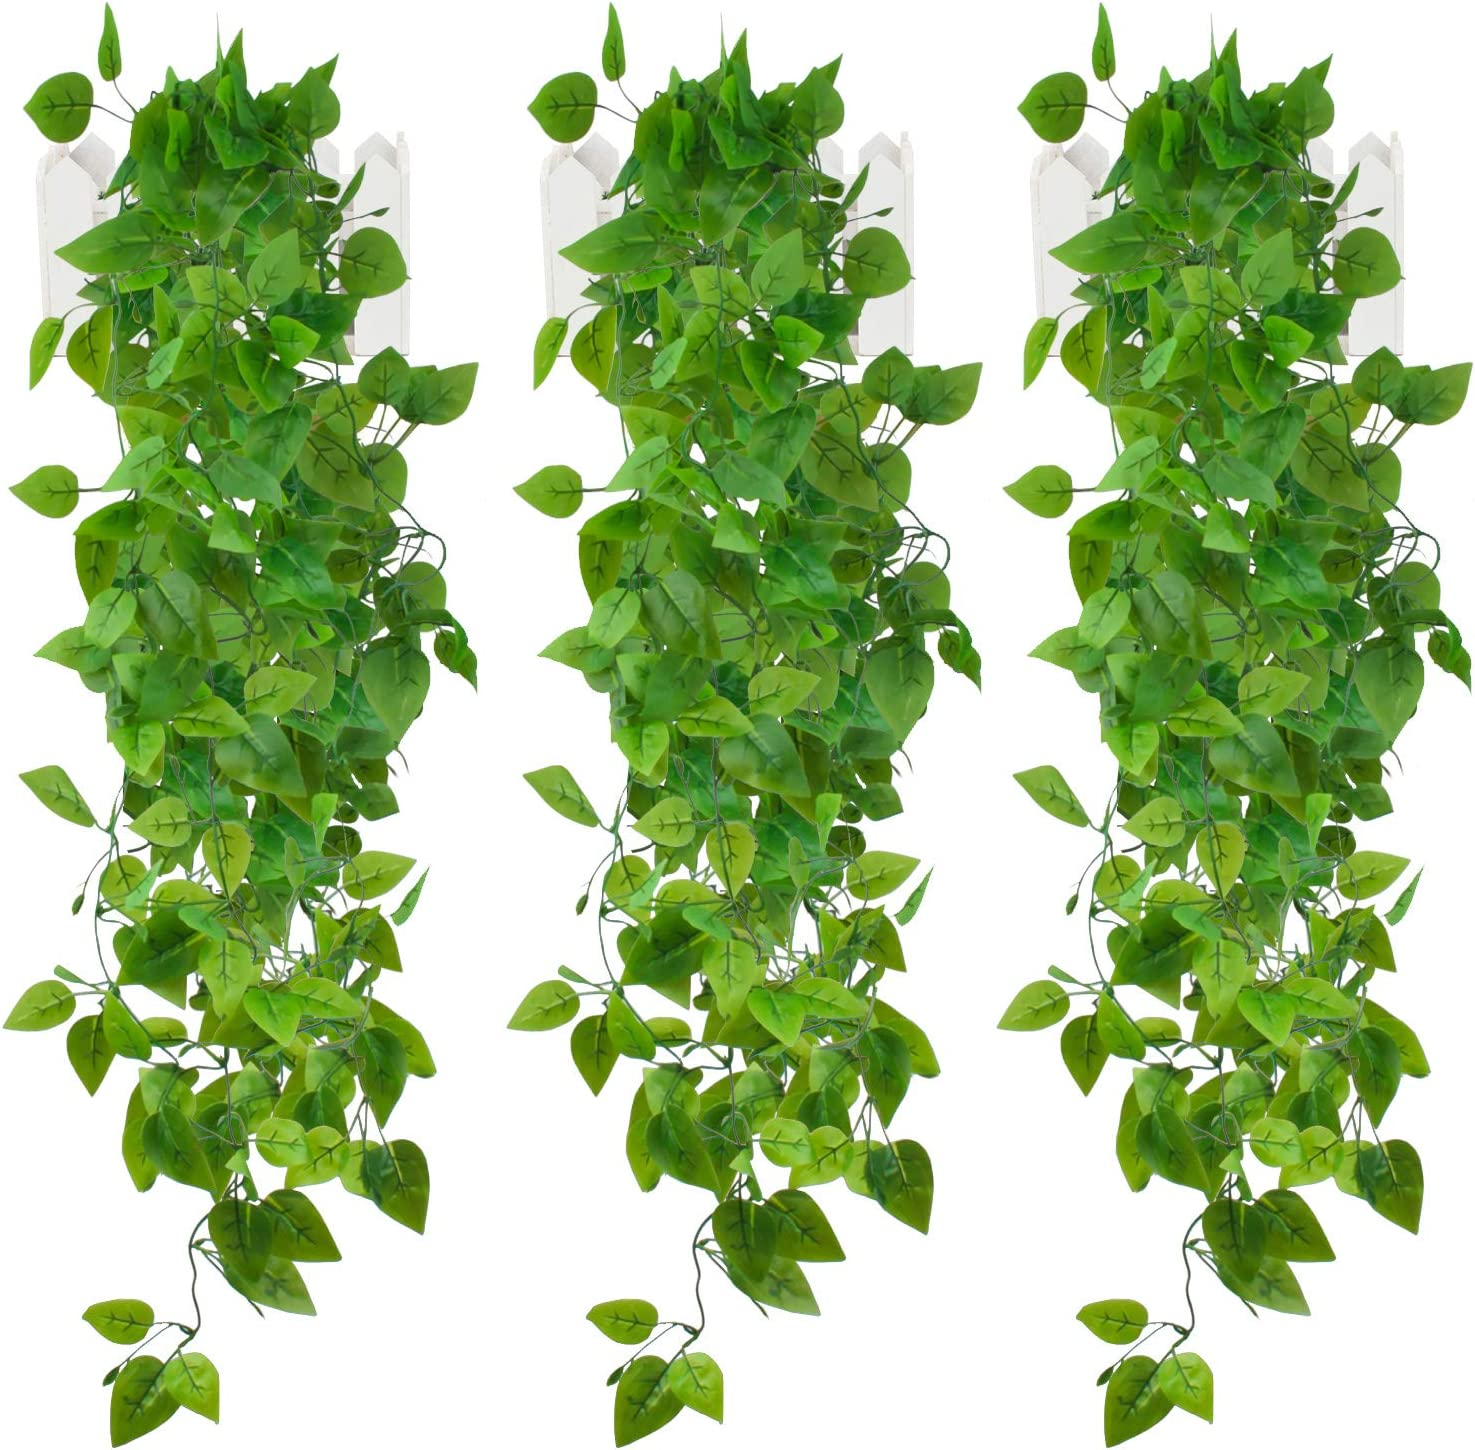 Artificial Hanging Plants, EHWINE 3 Pcs 3.93 Ft Fake Ivy Vines Each Greenery Garland Leaves Faux Hanging Plant Vines for Home Bedroom Room Indoor Wedding Wall Decor (No Baskets)